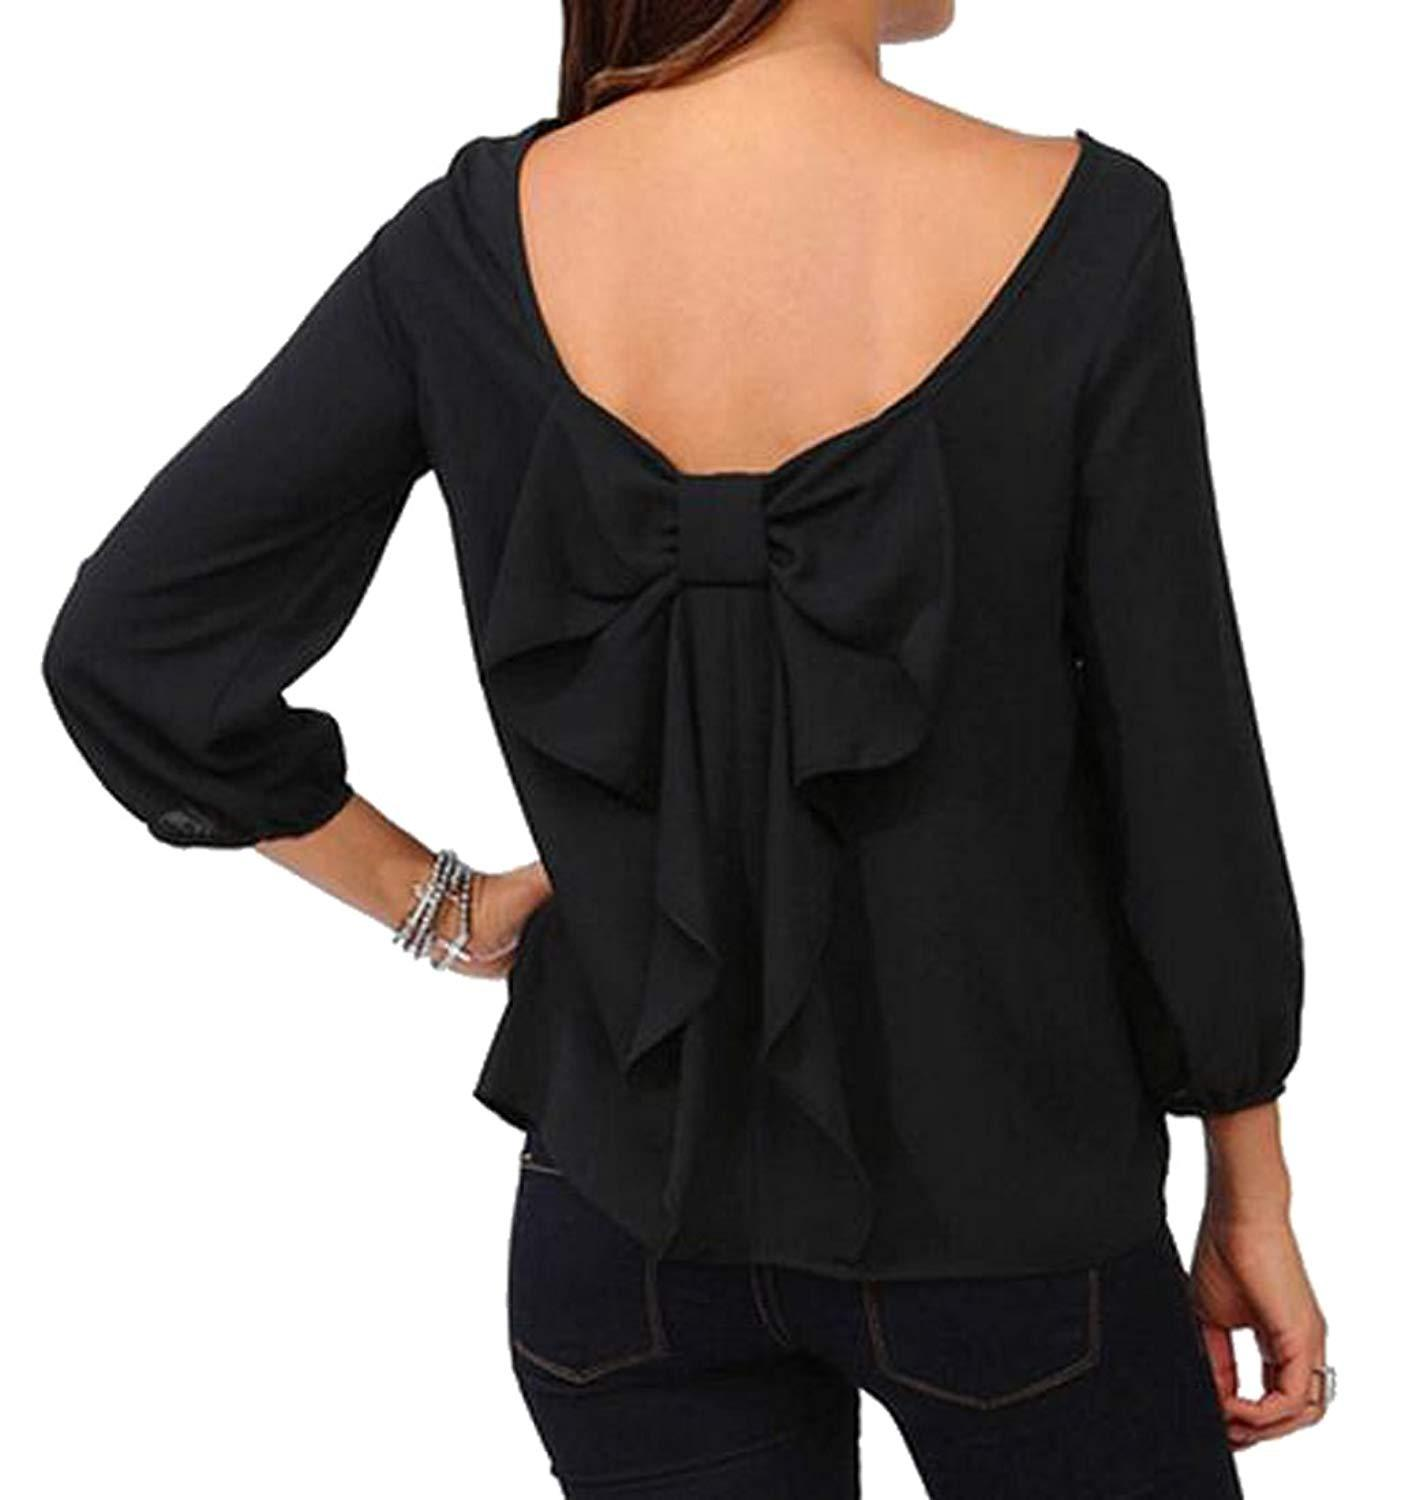 1e9c677f881c0 Womens Plus Size 3 4 Sleeve Solid Chiffon Shirt Top Blouse Find A Shirt  Shirts T Shirts From Goldenharvest